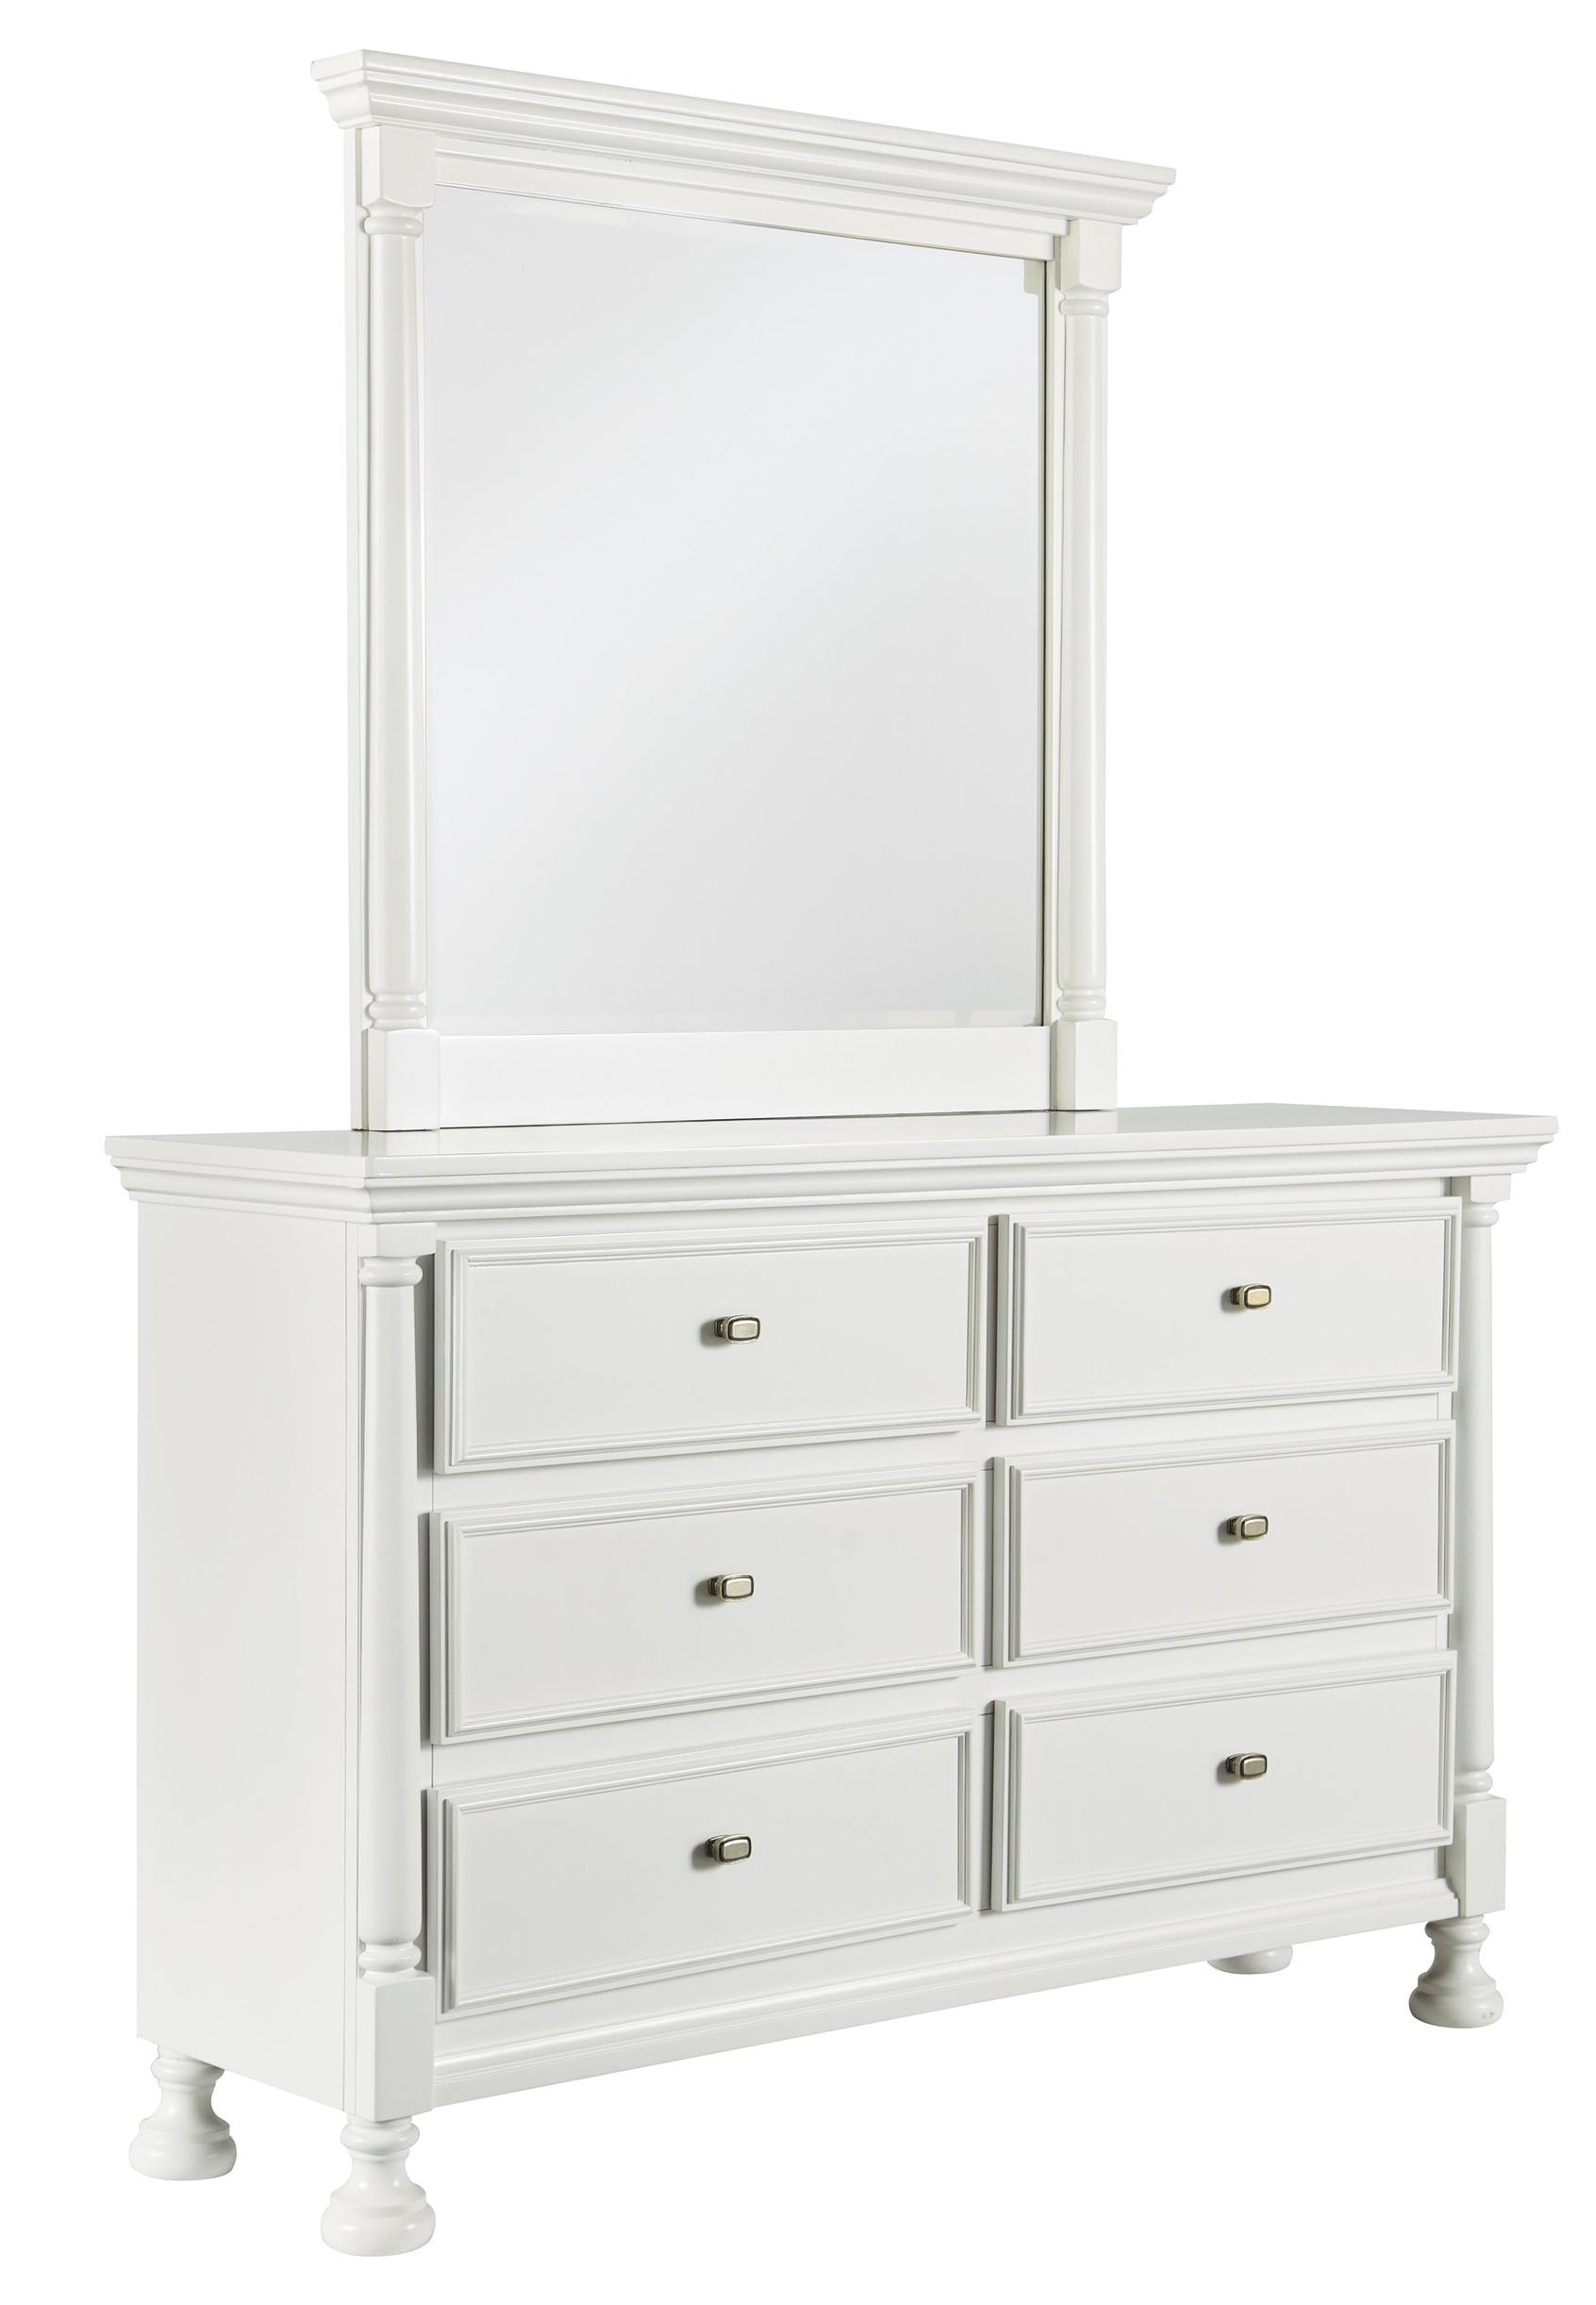 Kaslyn Dresser & Bedroom Mirror by Signature Design by Ashley at Suburban Furniture